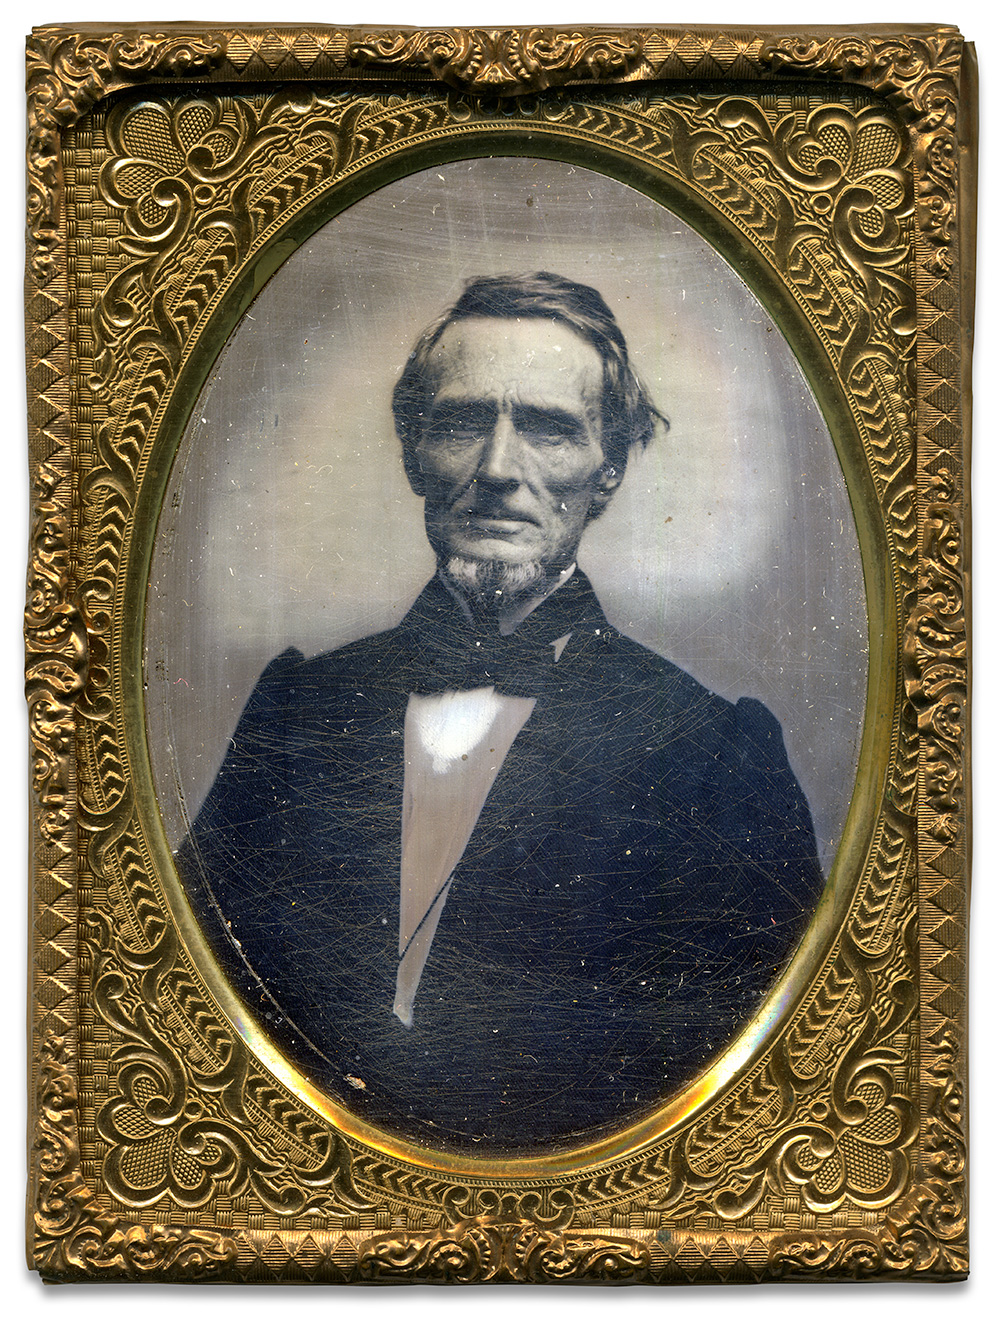 Quarter-plate tintype attributed to Jesse H. Whitehurst of Washington, D.C.John O'Brien collection.